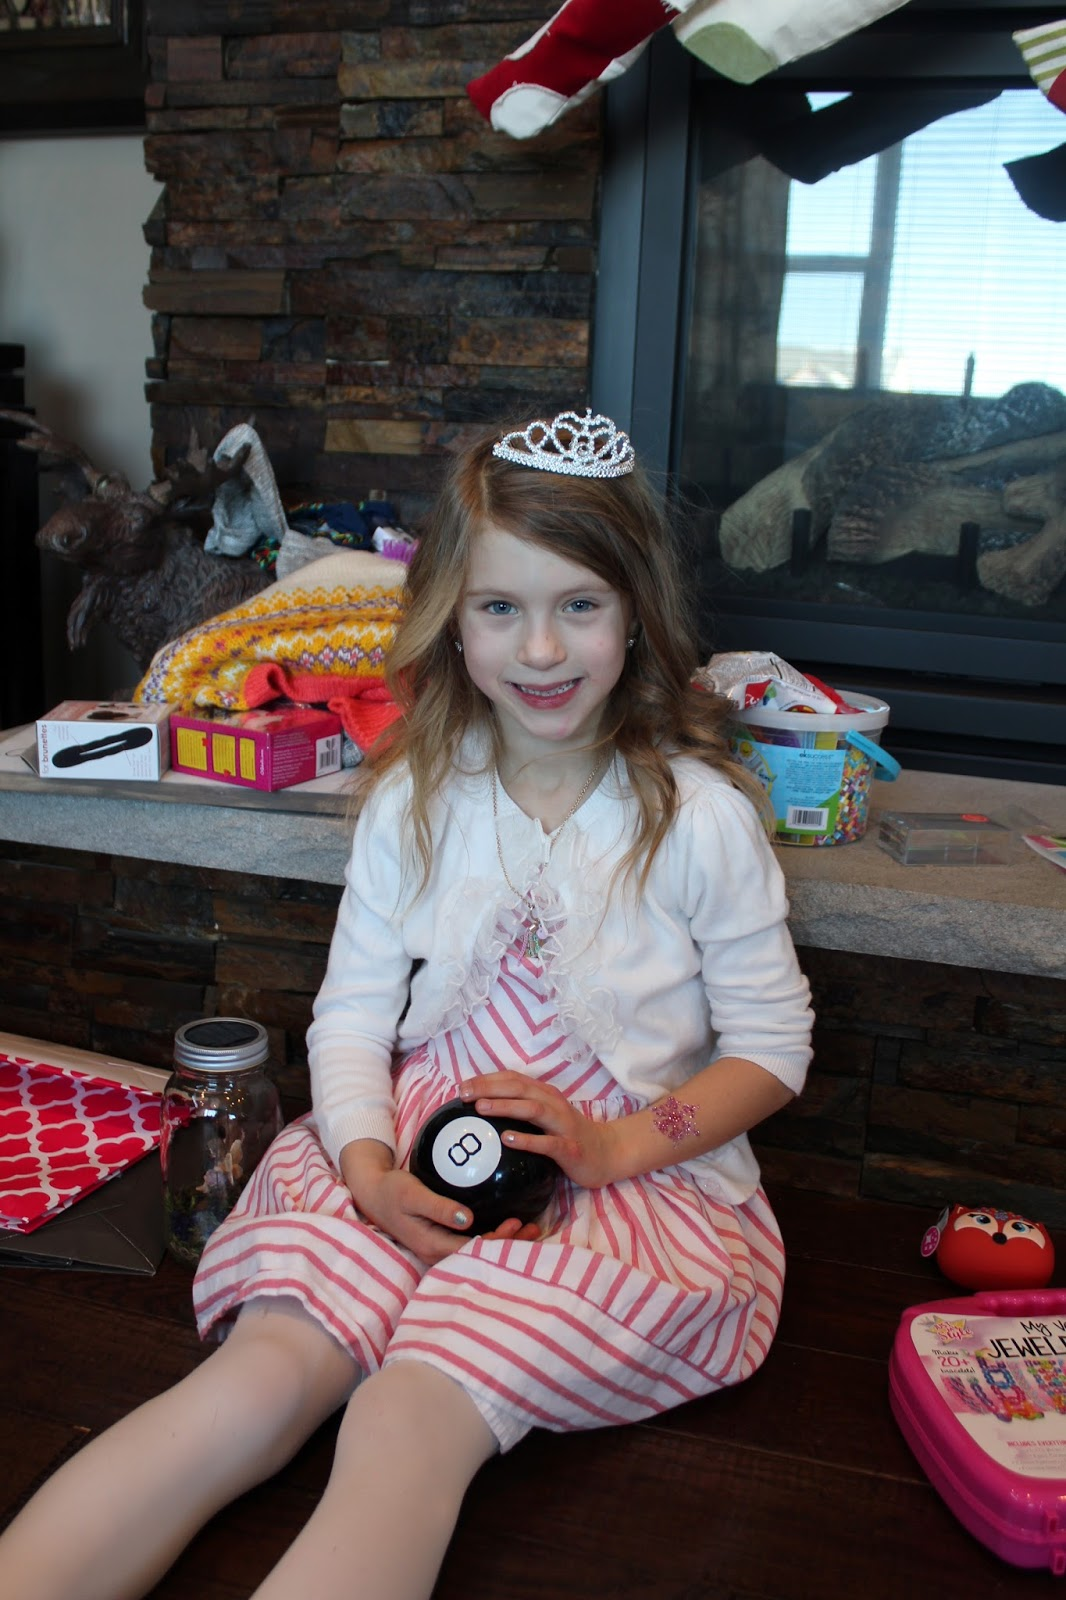 The Berger Blog Sophia S Turns 8 Years Old